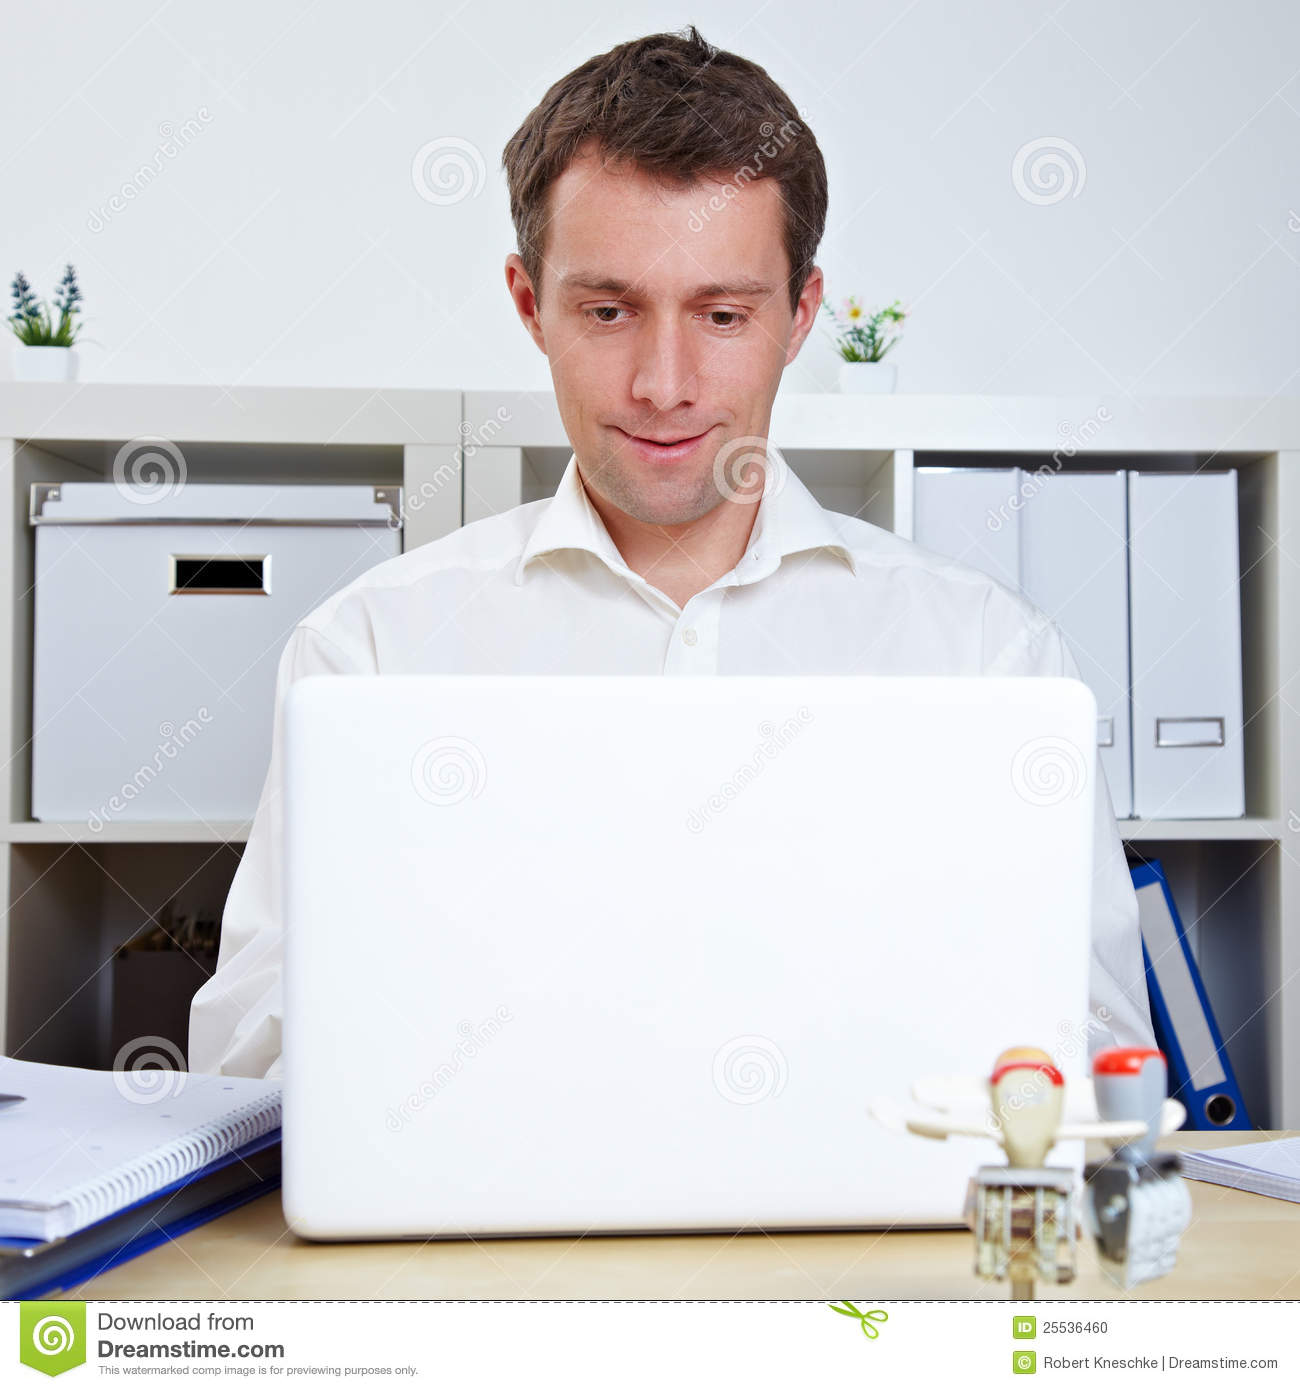 Manager Working At Laptop In Office Stock Photo - Image ...